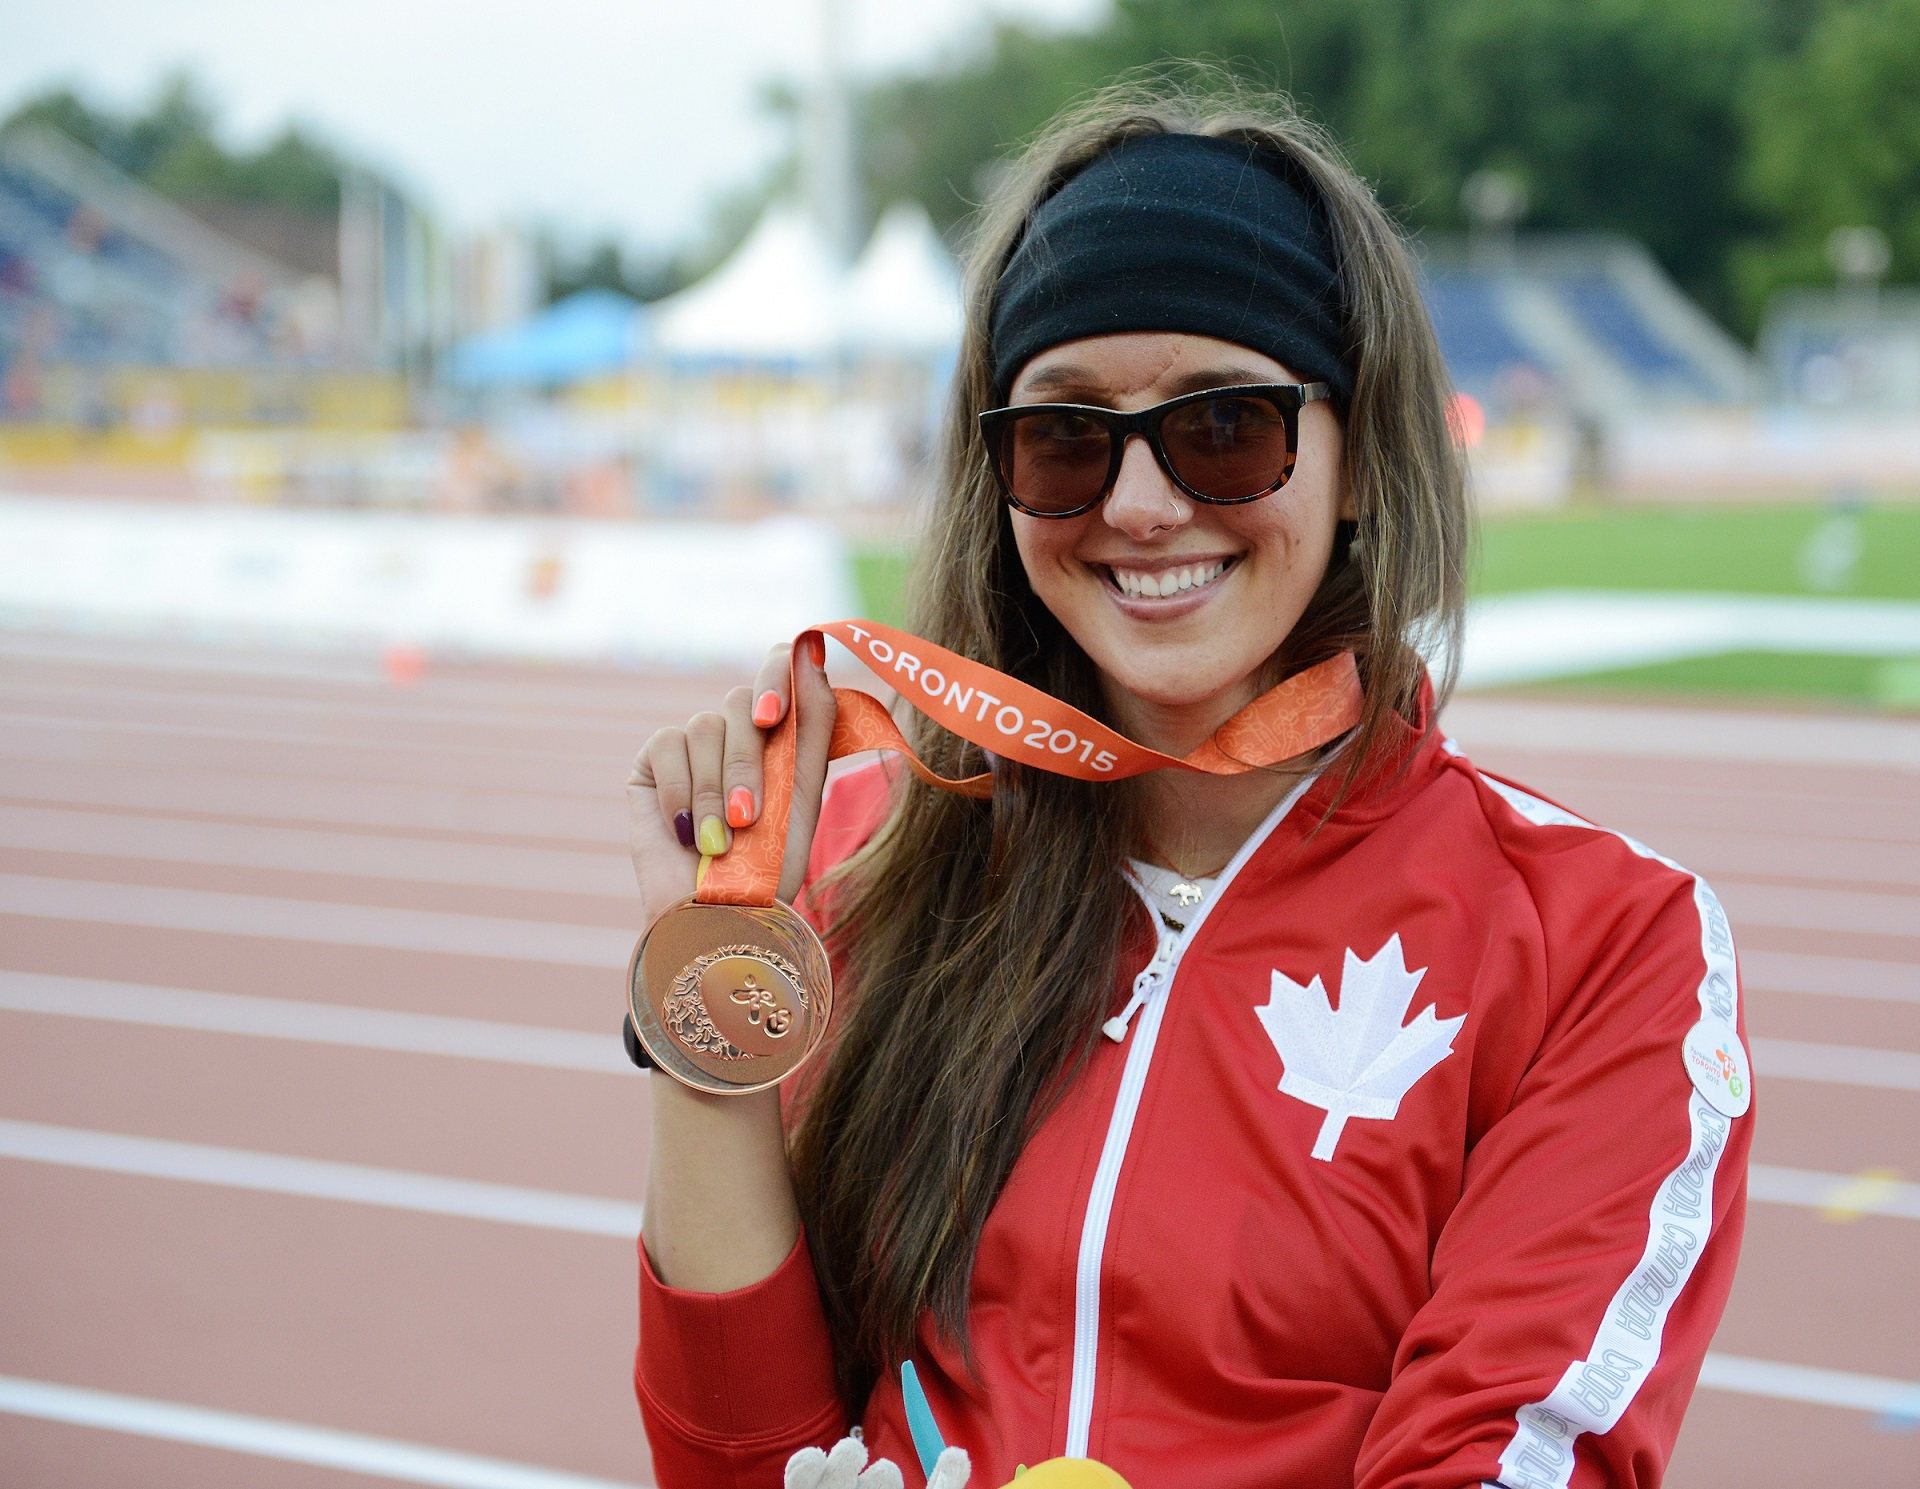 Pam LeJean holding her medal at Toronto 2015